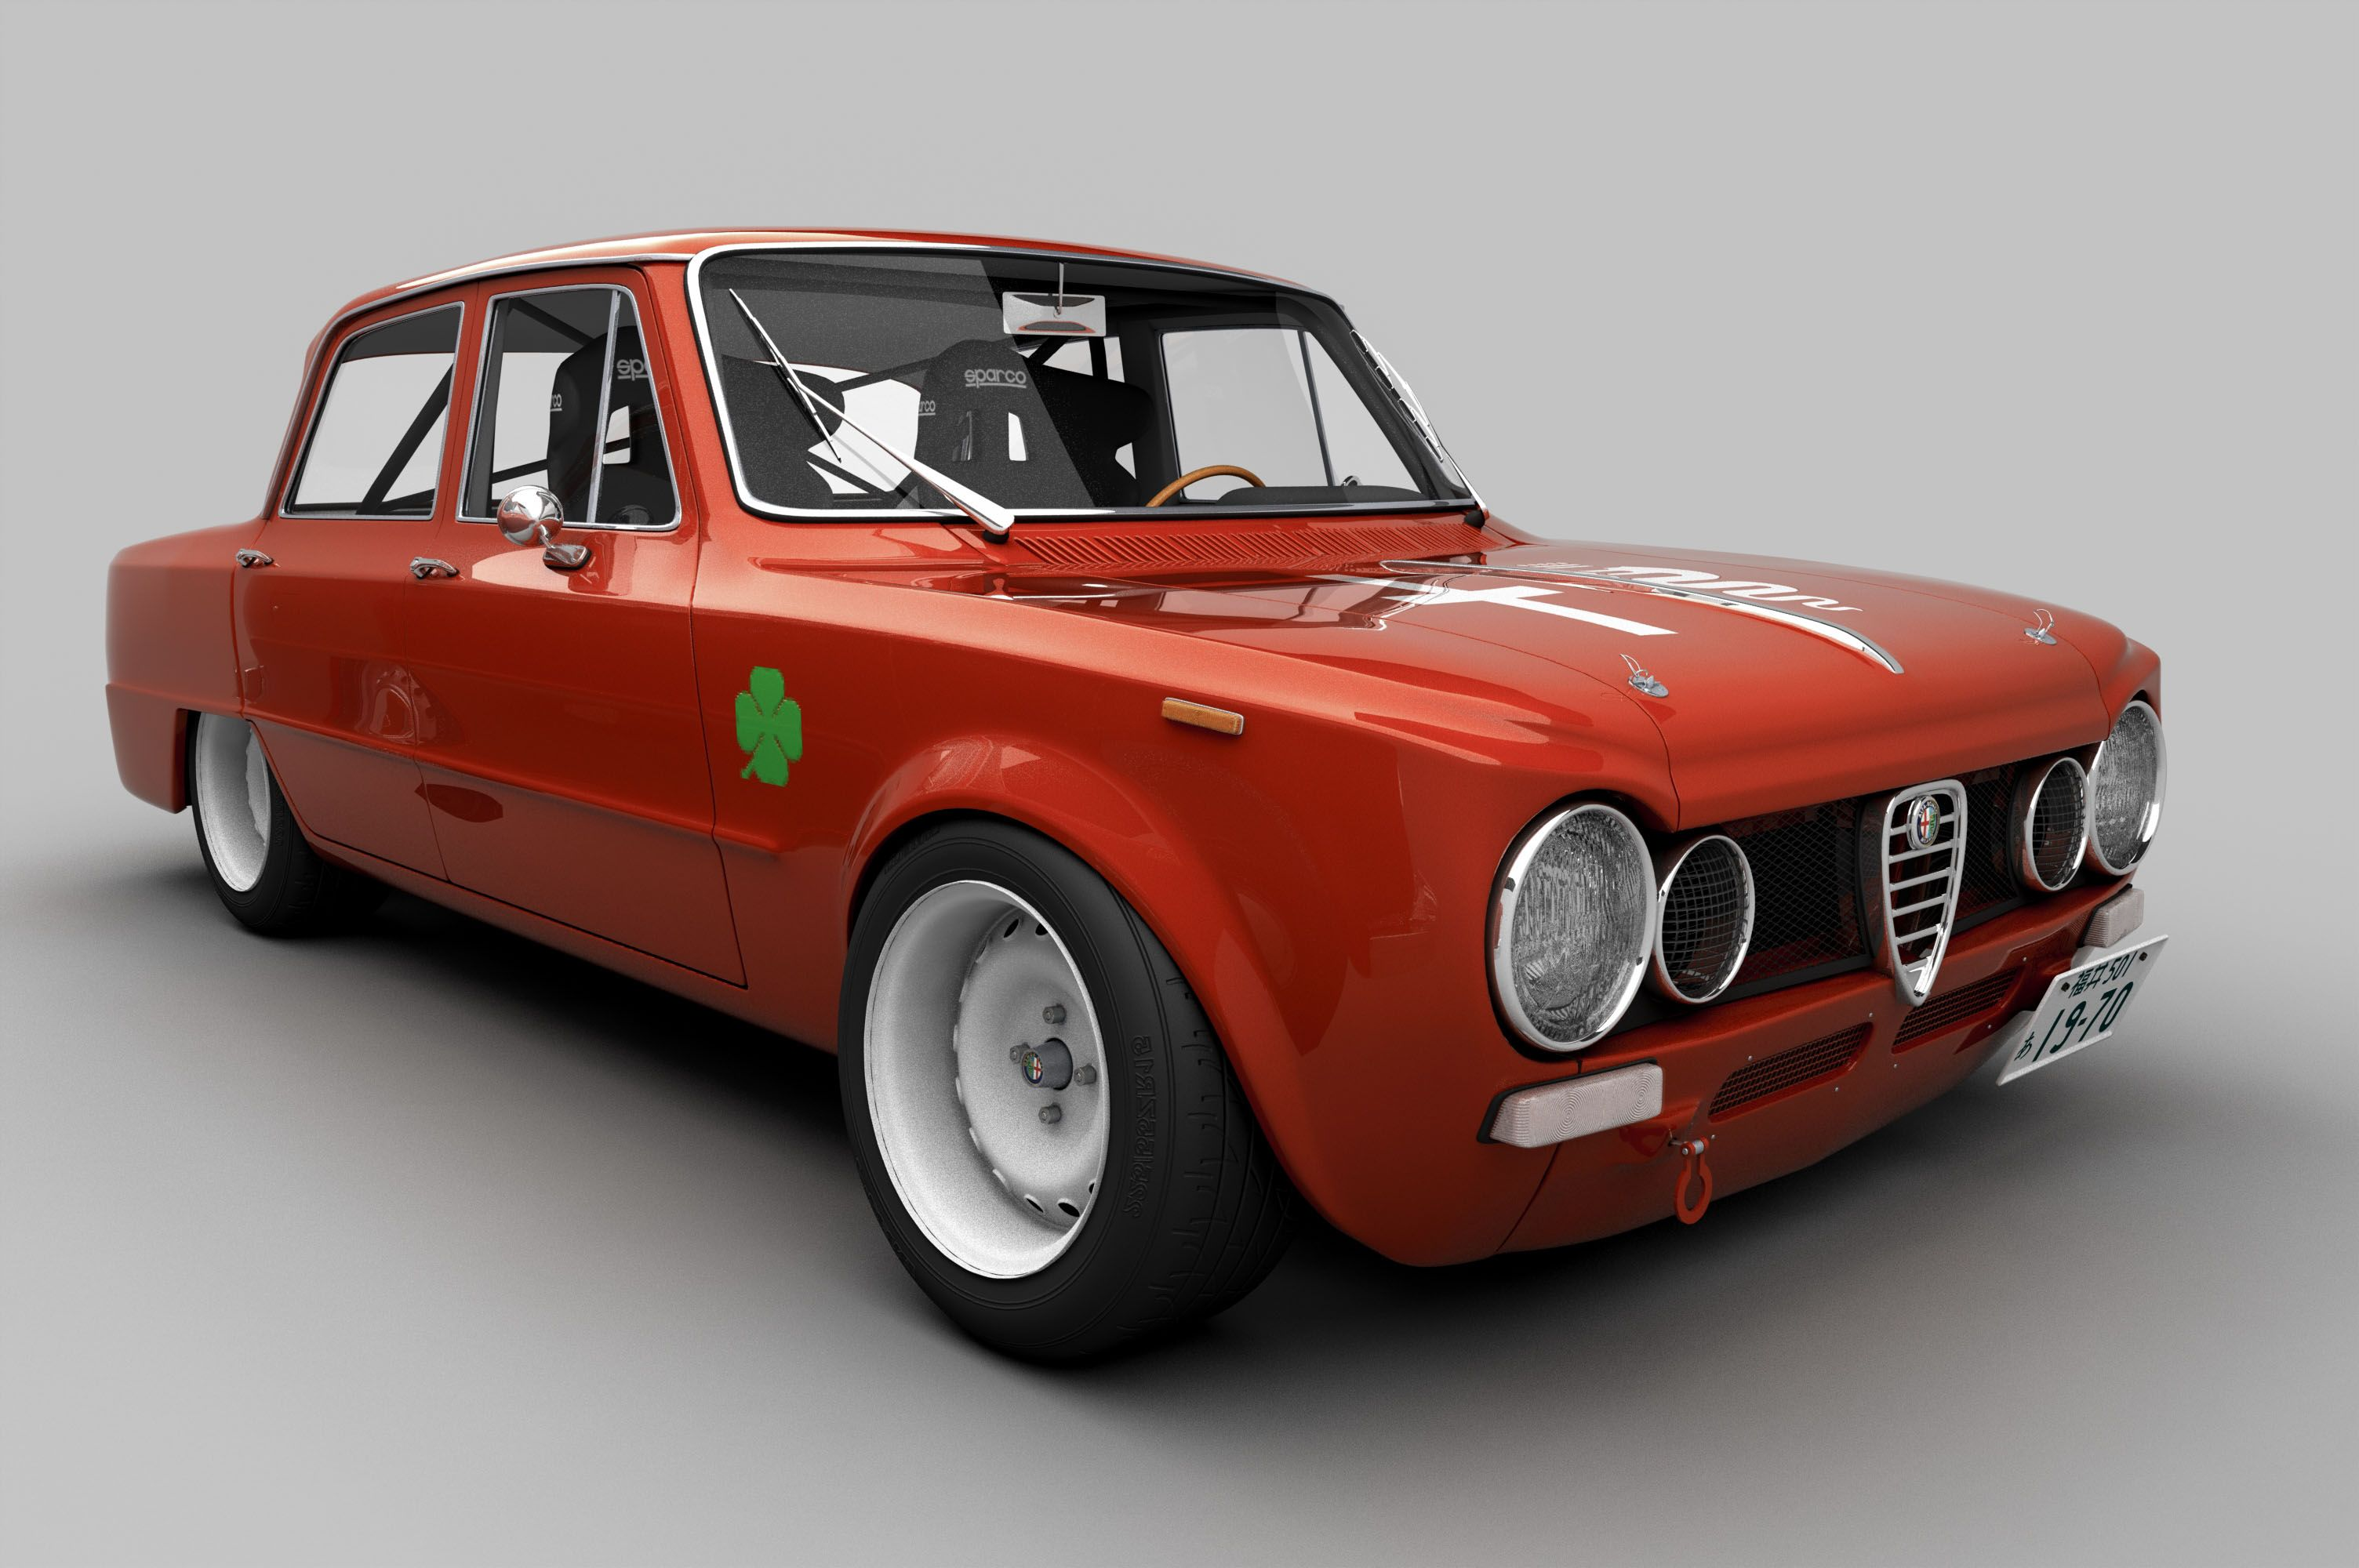 alfa romeo giulia super app modo driver collectors pinterest alfa romeo giulia and alfa romeo. Black Bedroom Furniture Sets. Home Design Ideas